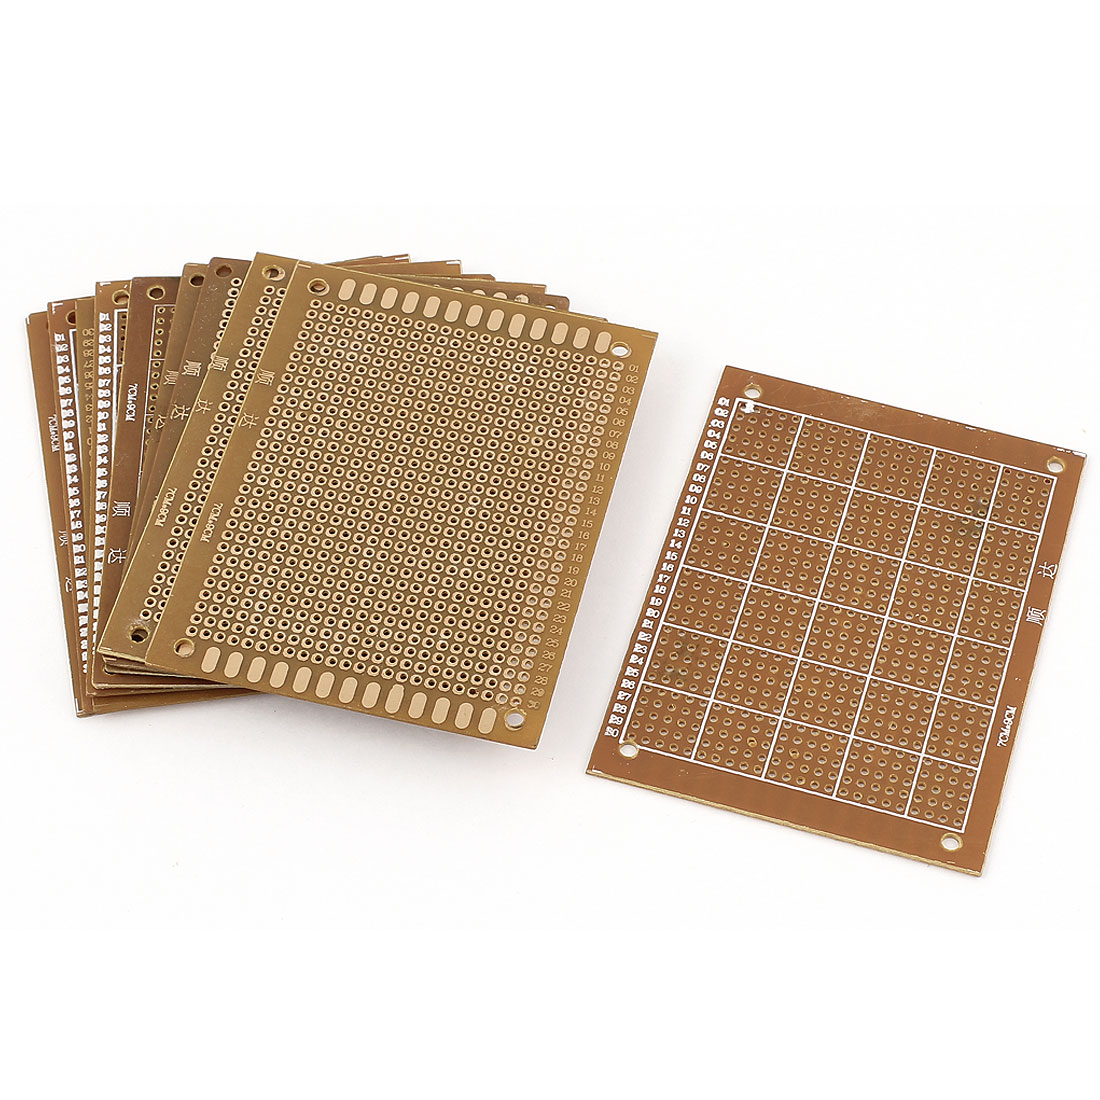 10pcs Single-sided PCB Printed Circuit Board Prototype Breadboard 9cm x 7cm